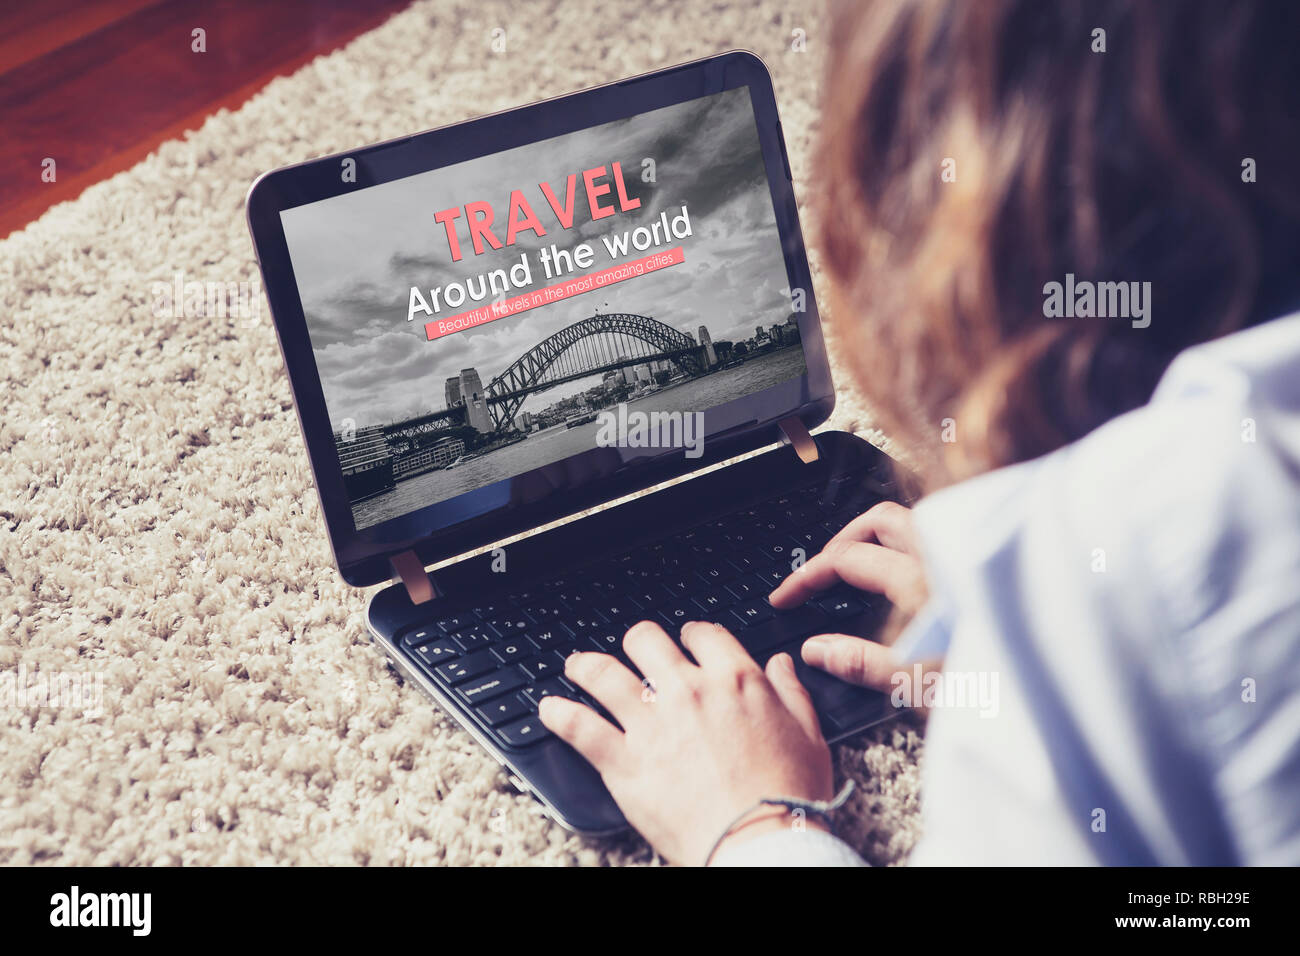 Travel agency website in a laptop screen while woman uses it to book a travel at home. - Stock Image